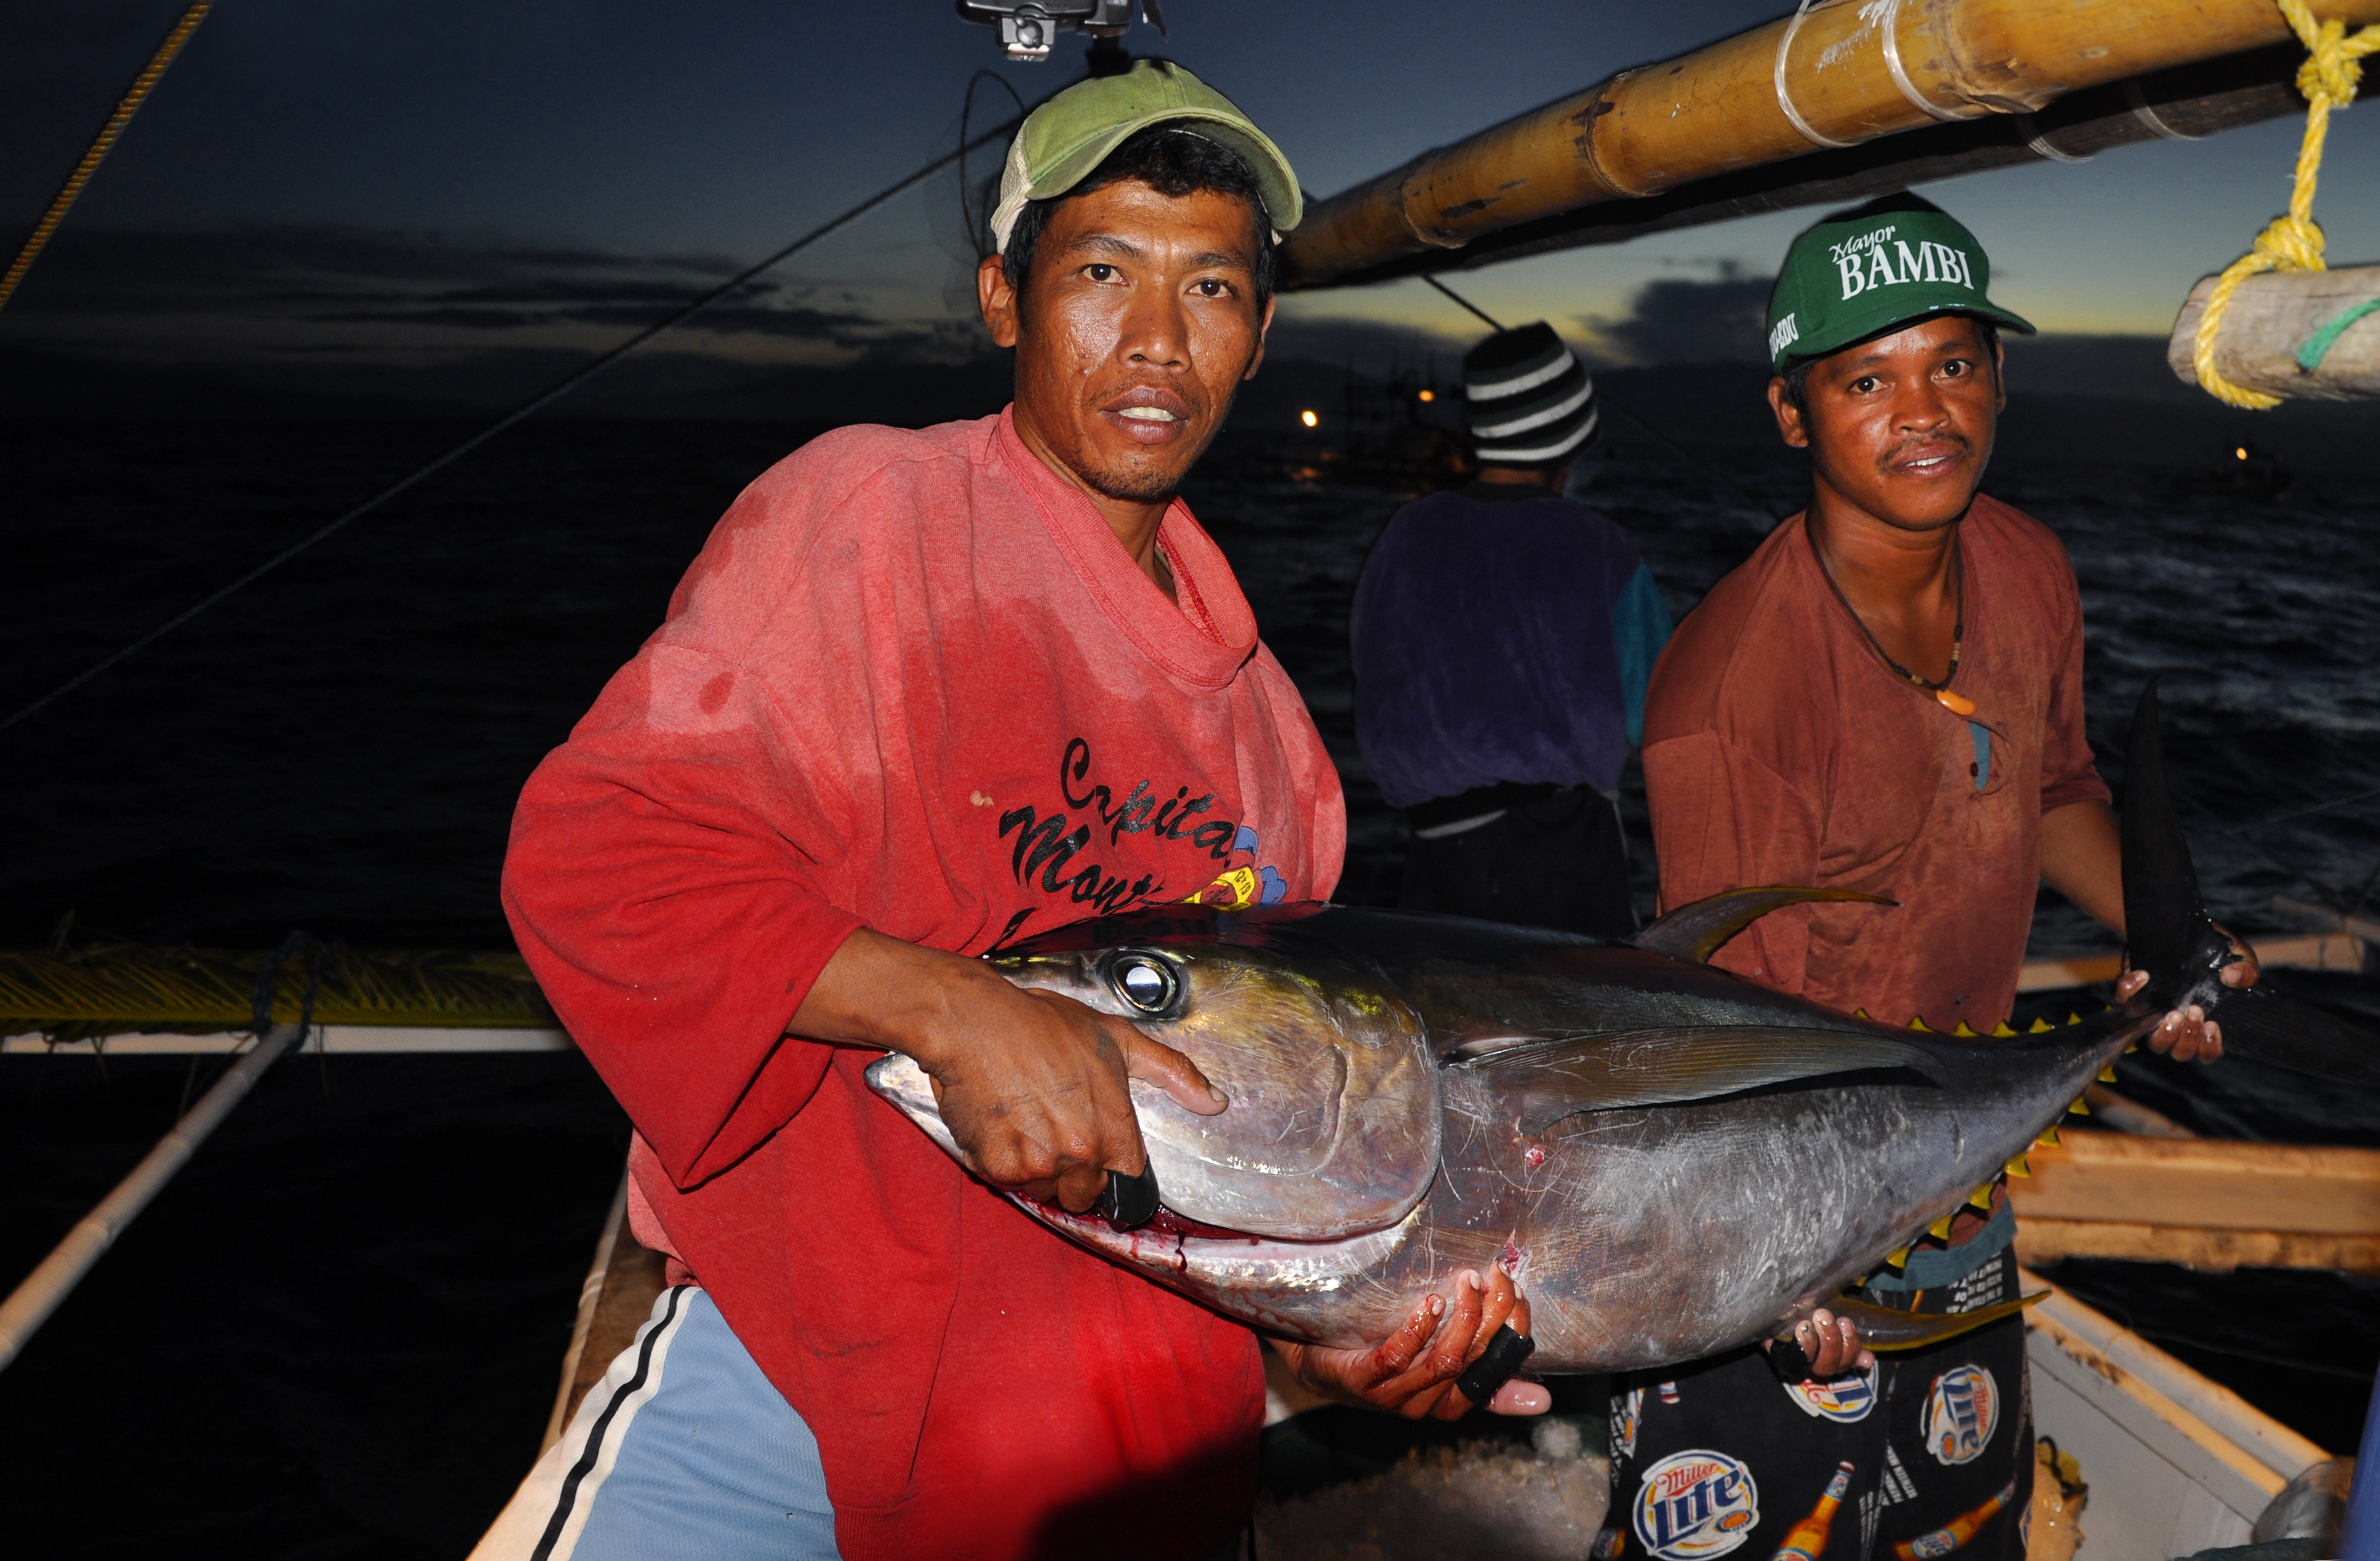 WWF's Sustainable Fishing Program Aims to Restore Fisheries Productivity in the Coral Triangle